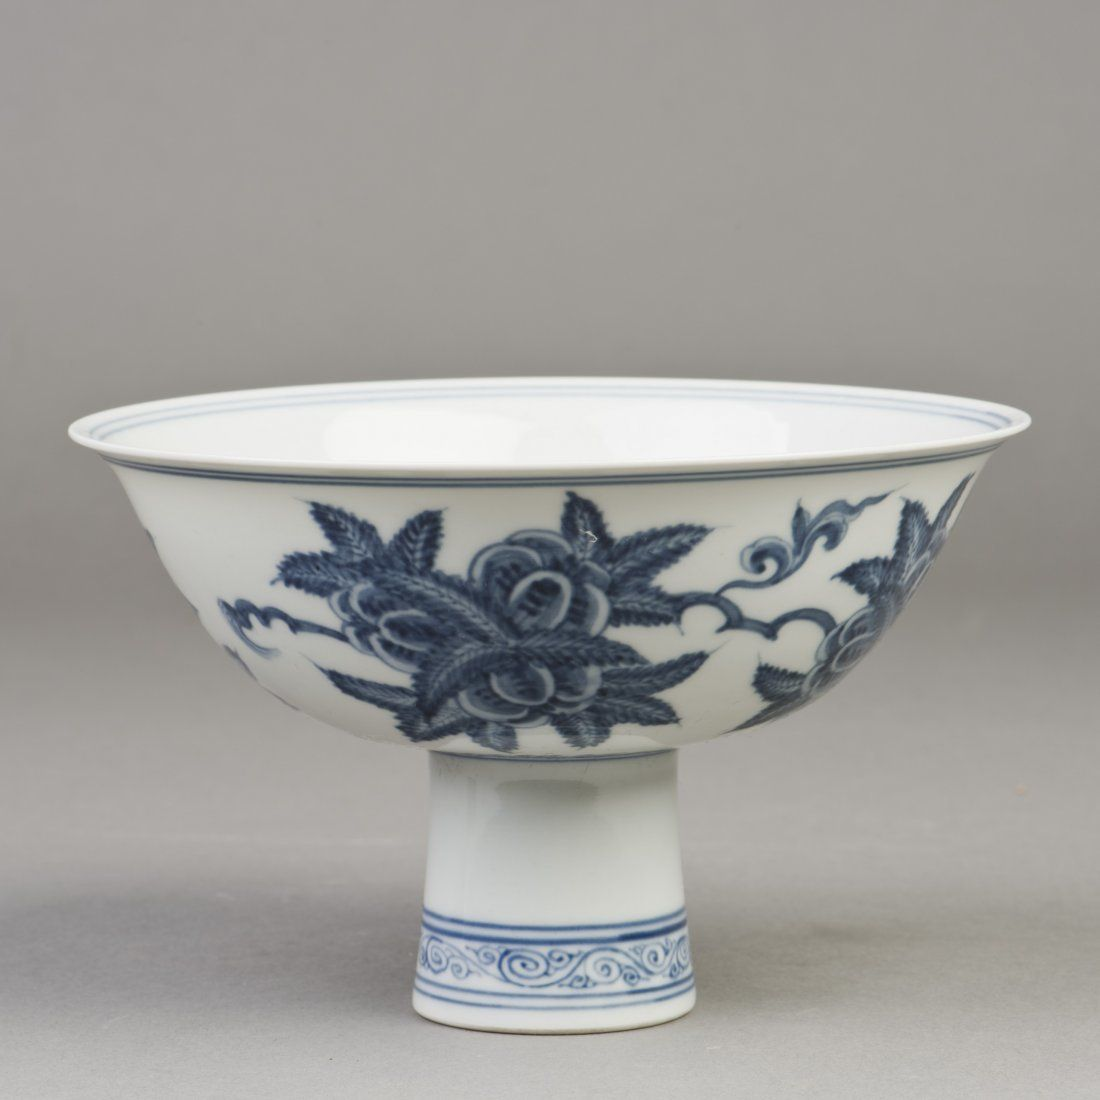 A BLUE AND WHITE PORCELAIN BOWL WITH TALL FOOT